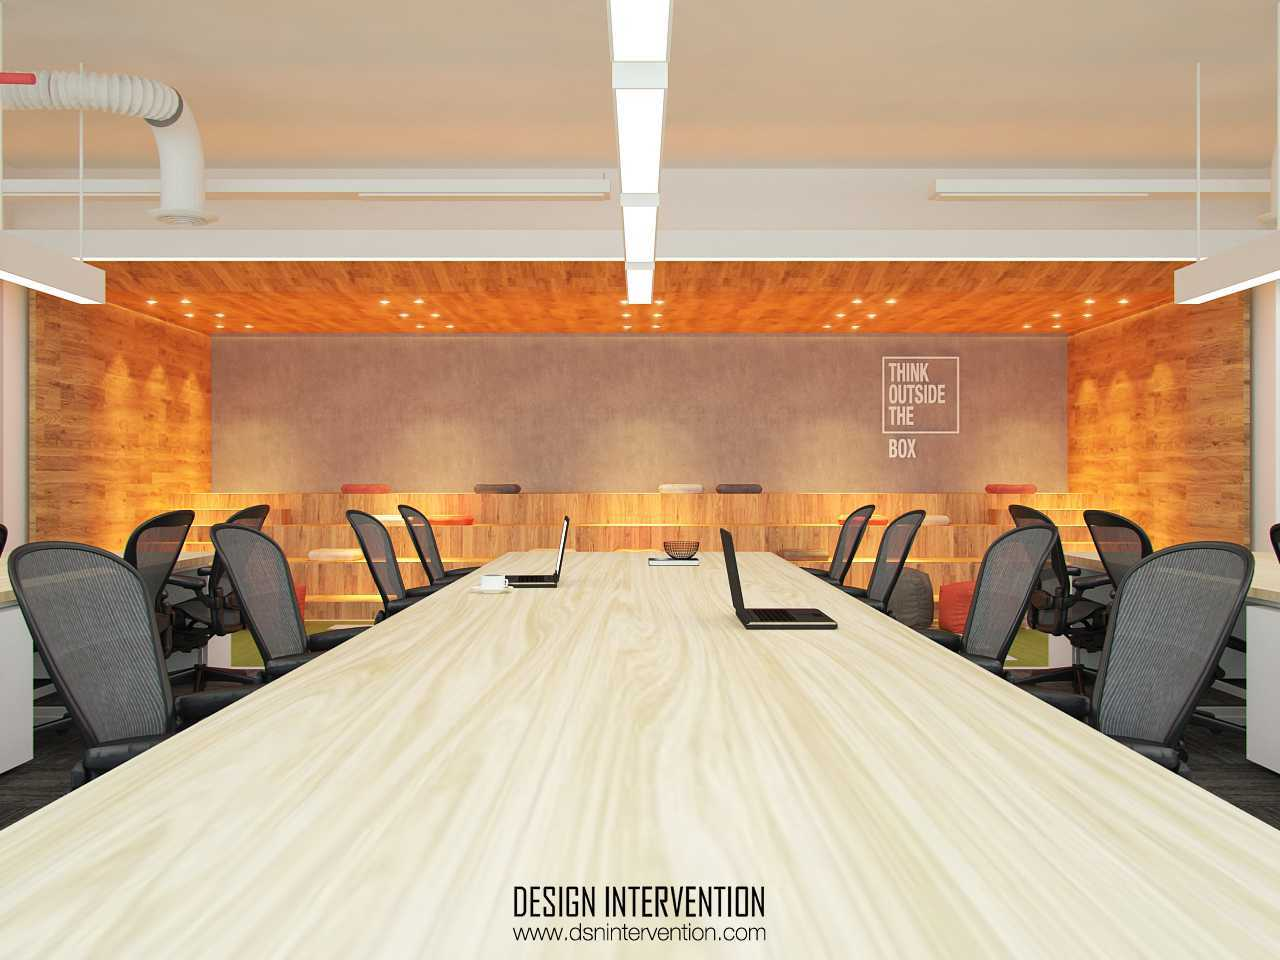 Design Intervention B - Office Concept Bsd Office Park Bsd Office Park Workspace  13970